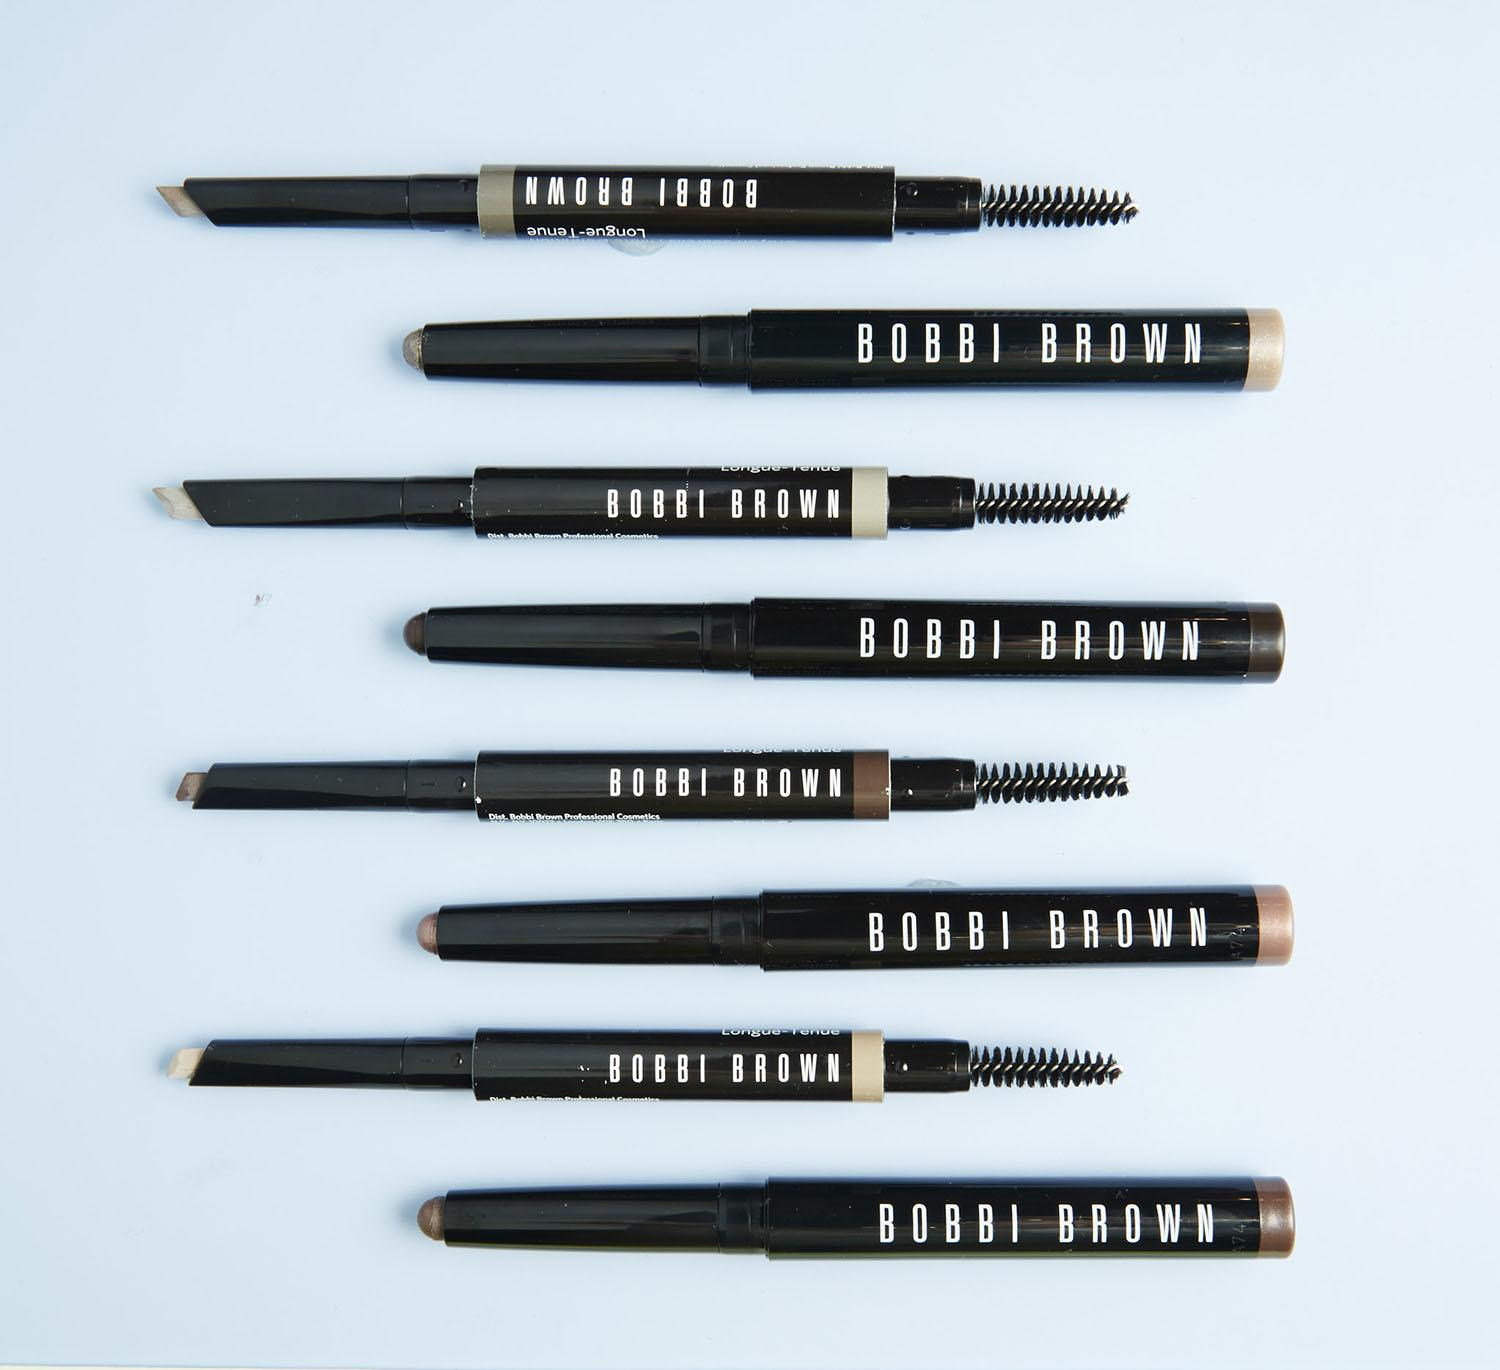 Bold brows are one of our fave beauty trends this spring. @BobbiBrown http://t.co/mhchtatzkc http://t.co/6WYXSzYeuB